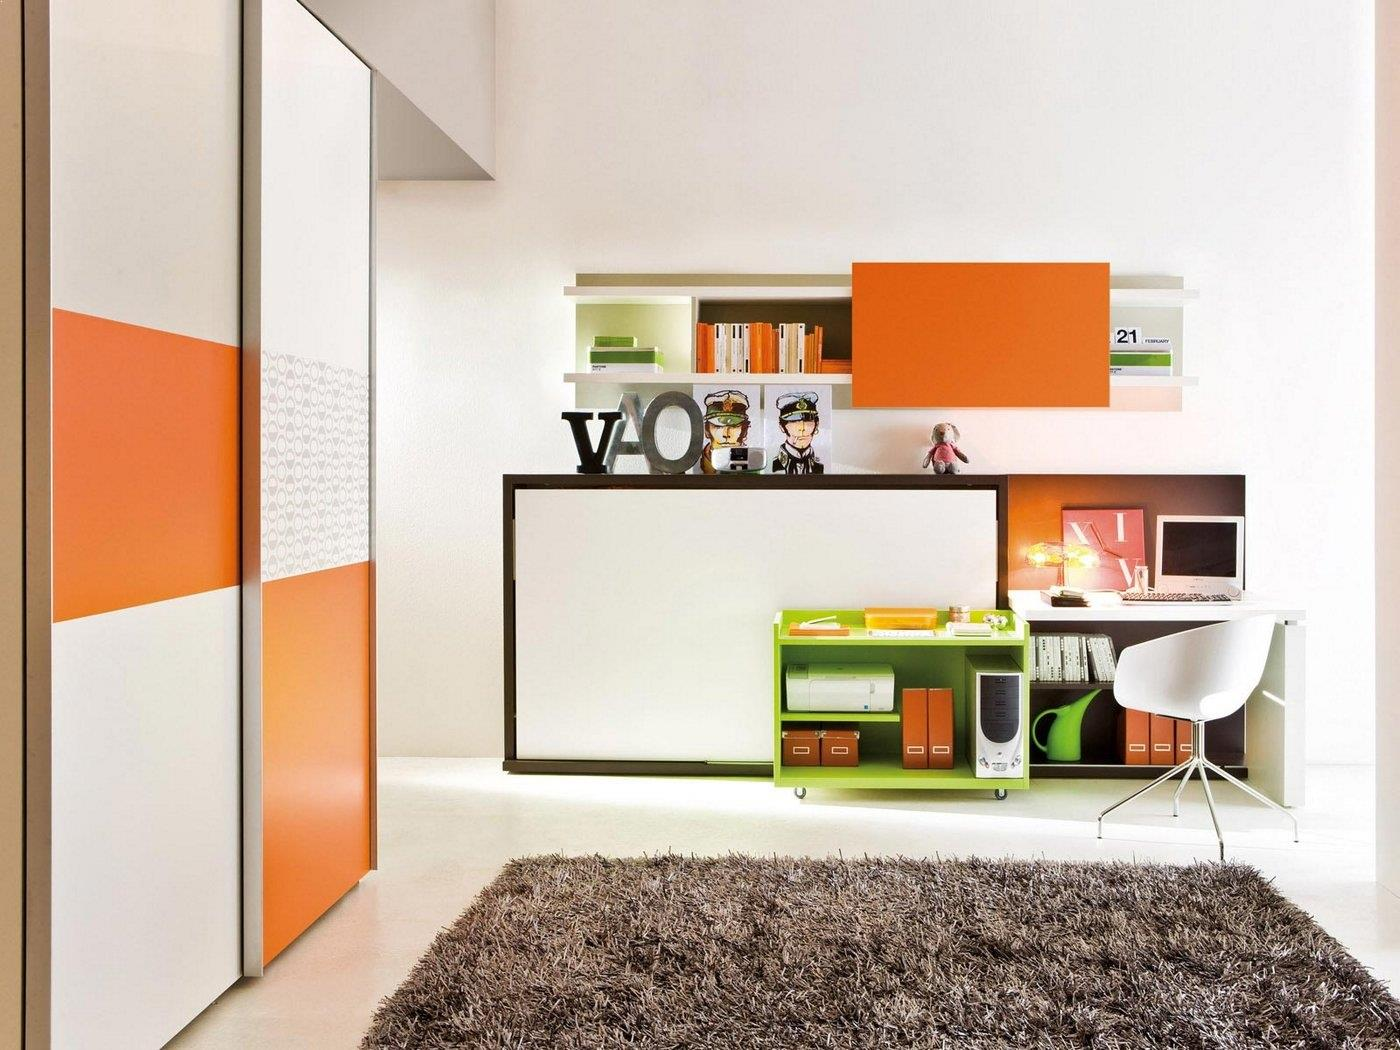 44-mobilier-inteligent-design-interior-smart